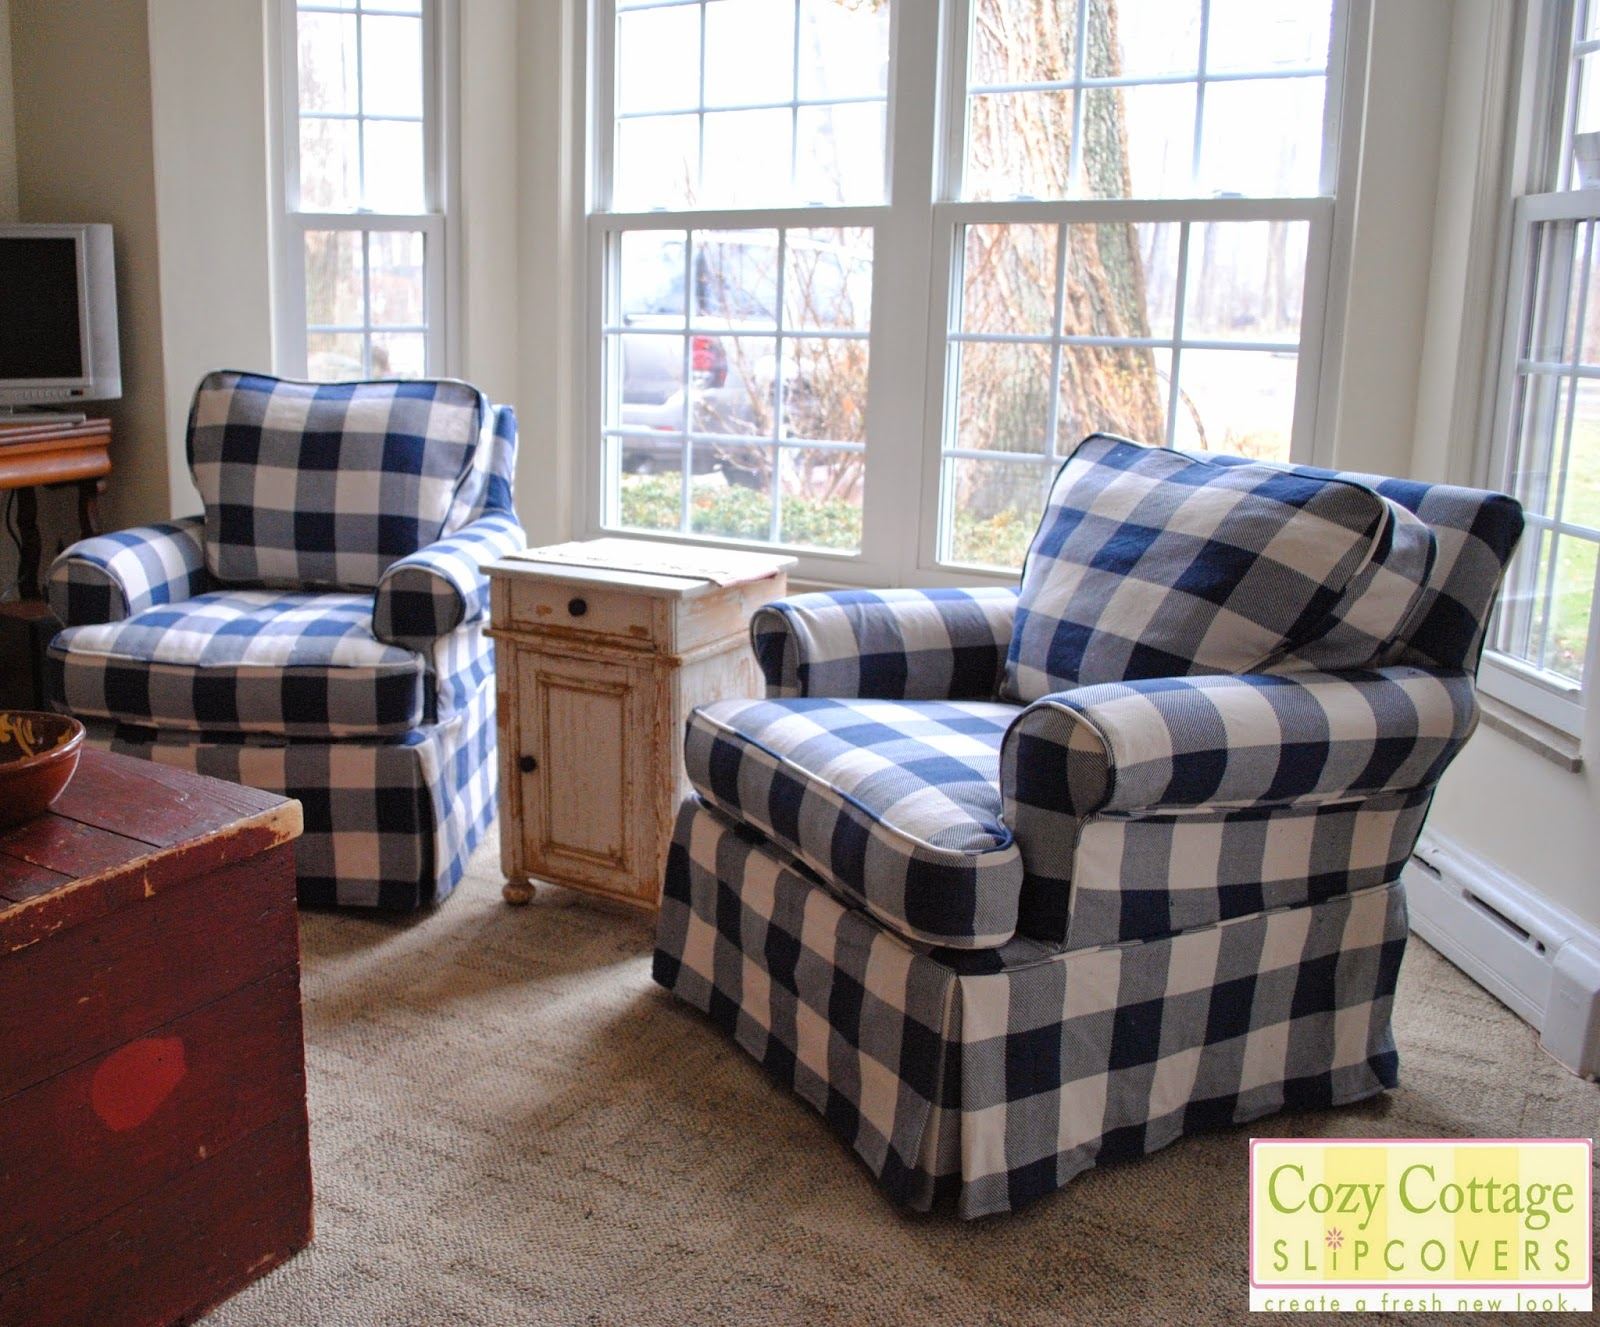 Buffalo Plaid Chair Bouncy Chairs For Baby Cozy Cottage Slipcovers Blue And White Check